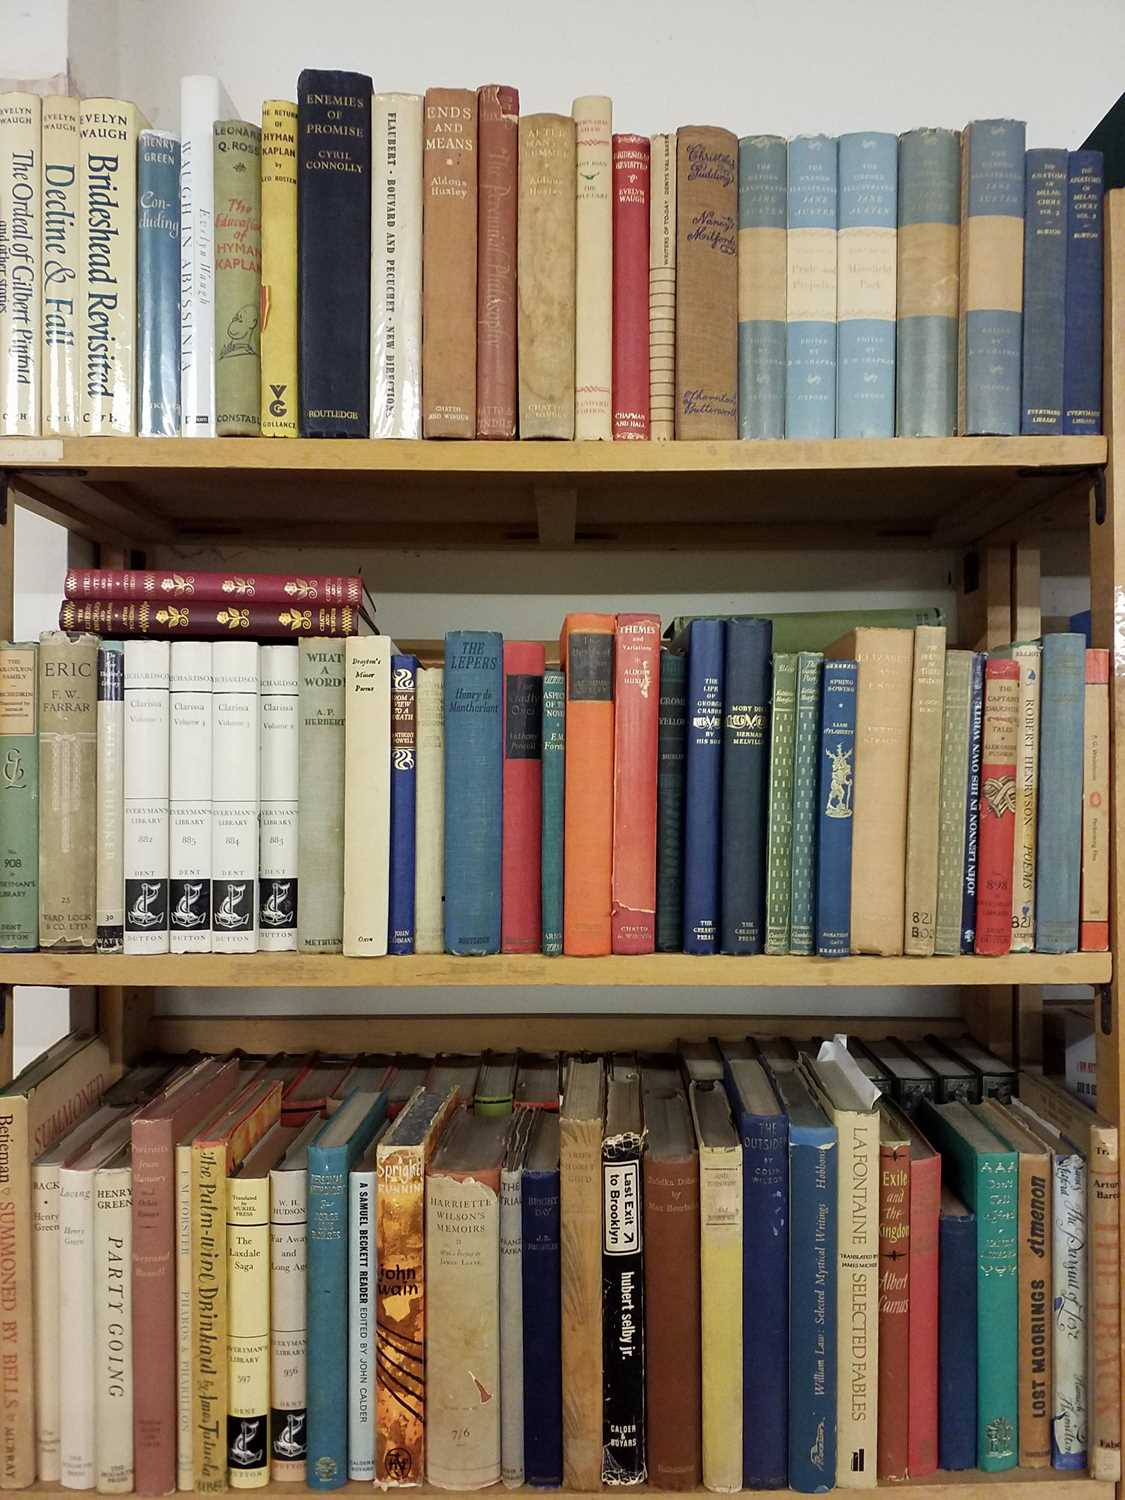 Lot 414 - Fiction. A large collection of mid 20th century fiction